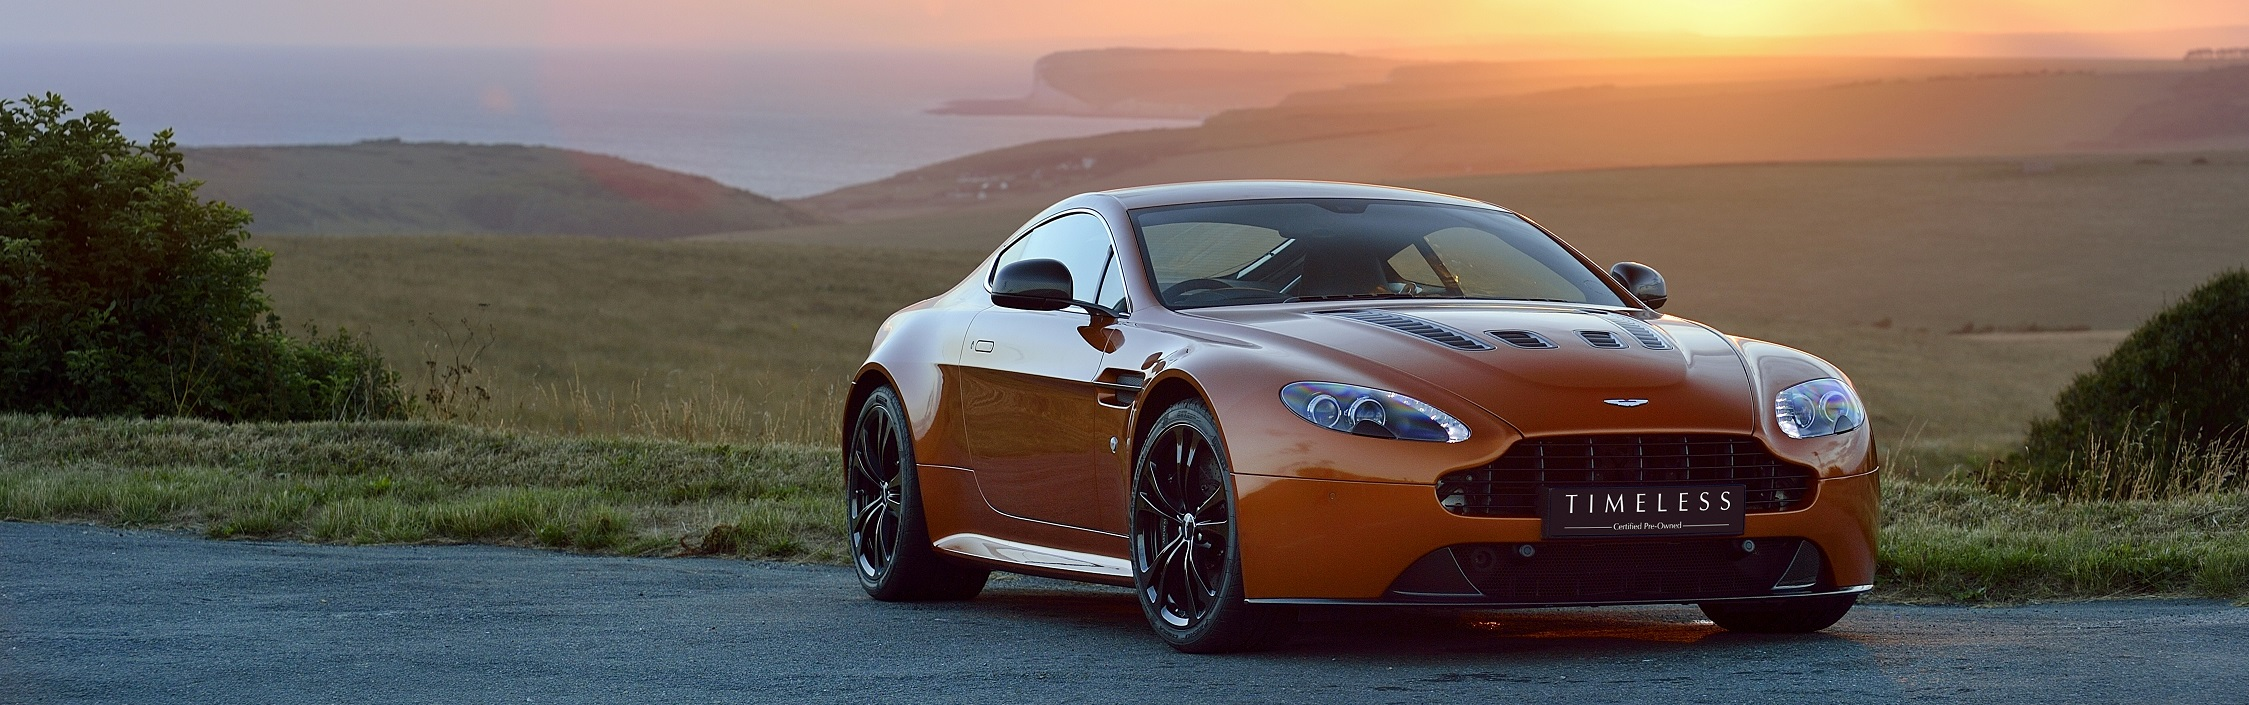 Aston Martin Newcastle Official Aston Martin Dealer - Aston martin pics